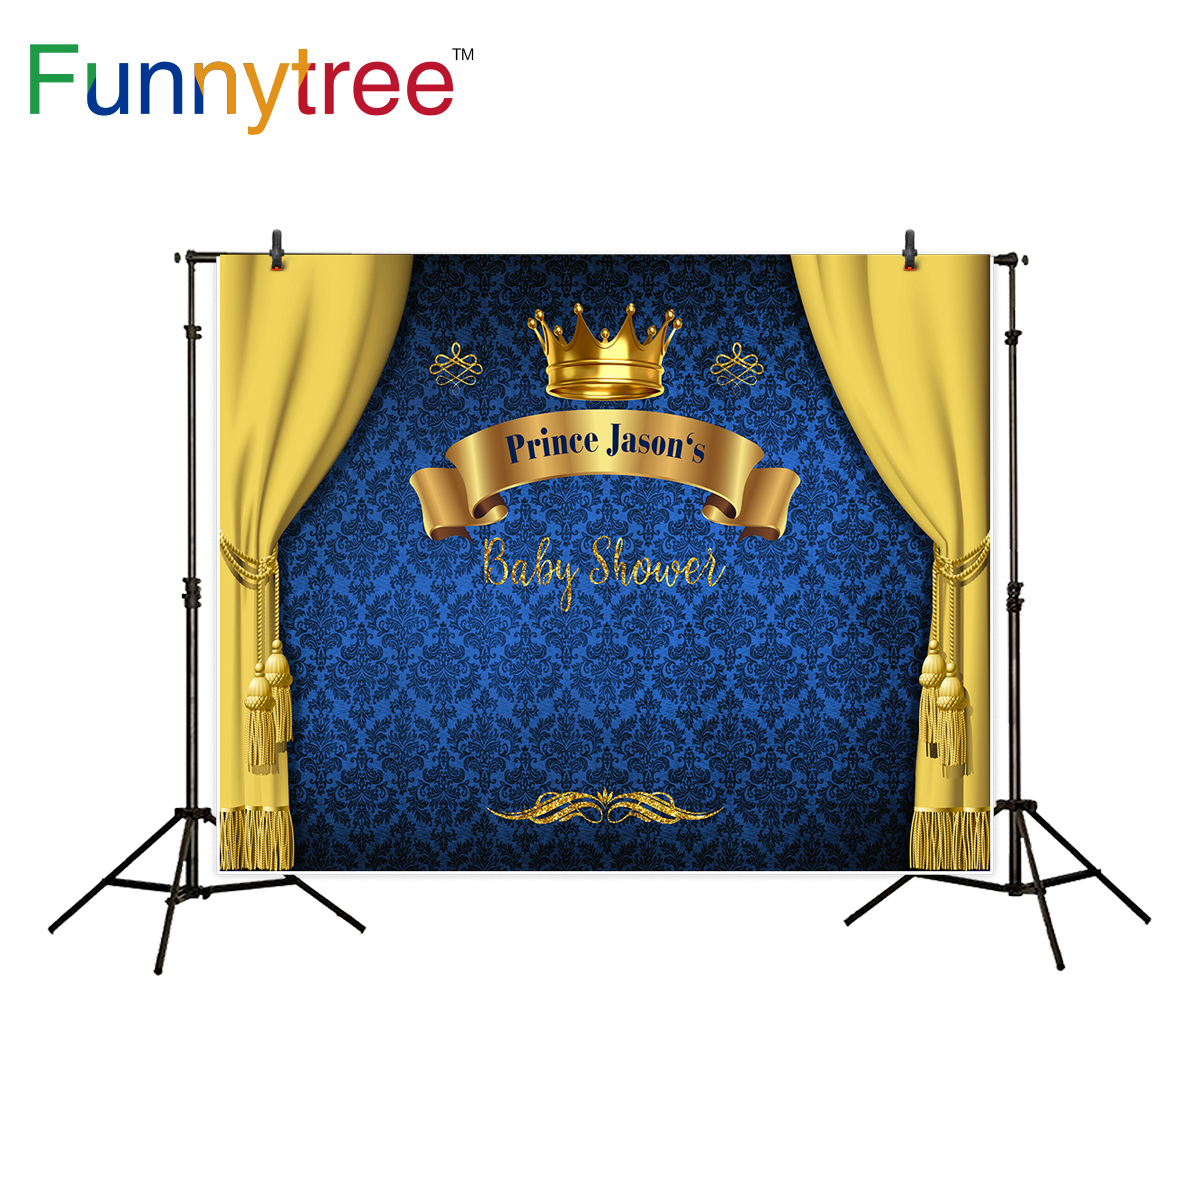 Funnytree prince photography background baby shower royal blue crown damask birthday backdrop photocall photo studio printed funnytree prince photography background baby shower royal blue crown damask birthday backdrop photocall photo studio printed